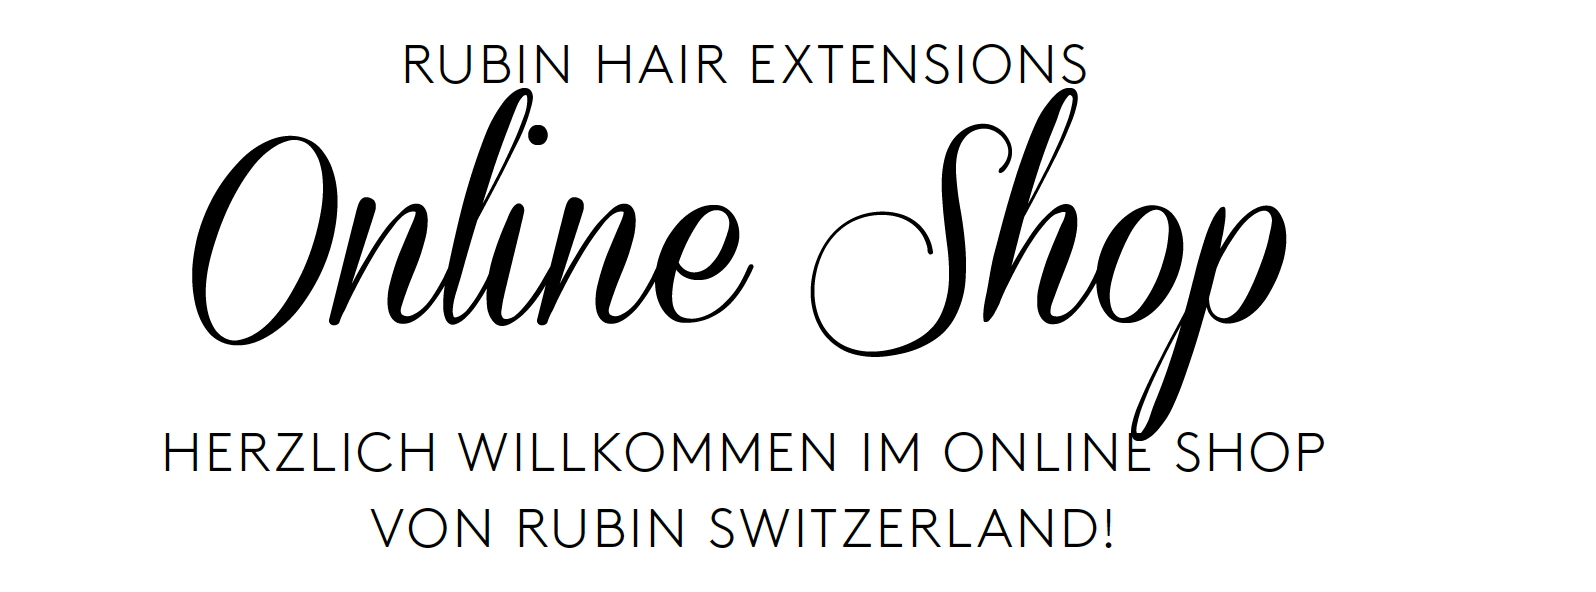 rubin extensions online hair extensions shop